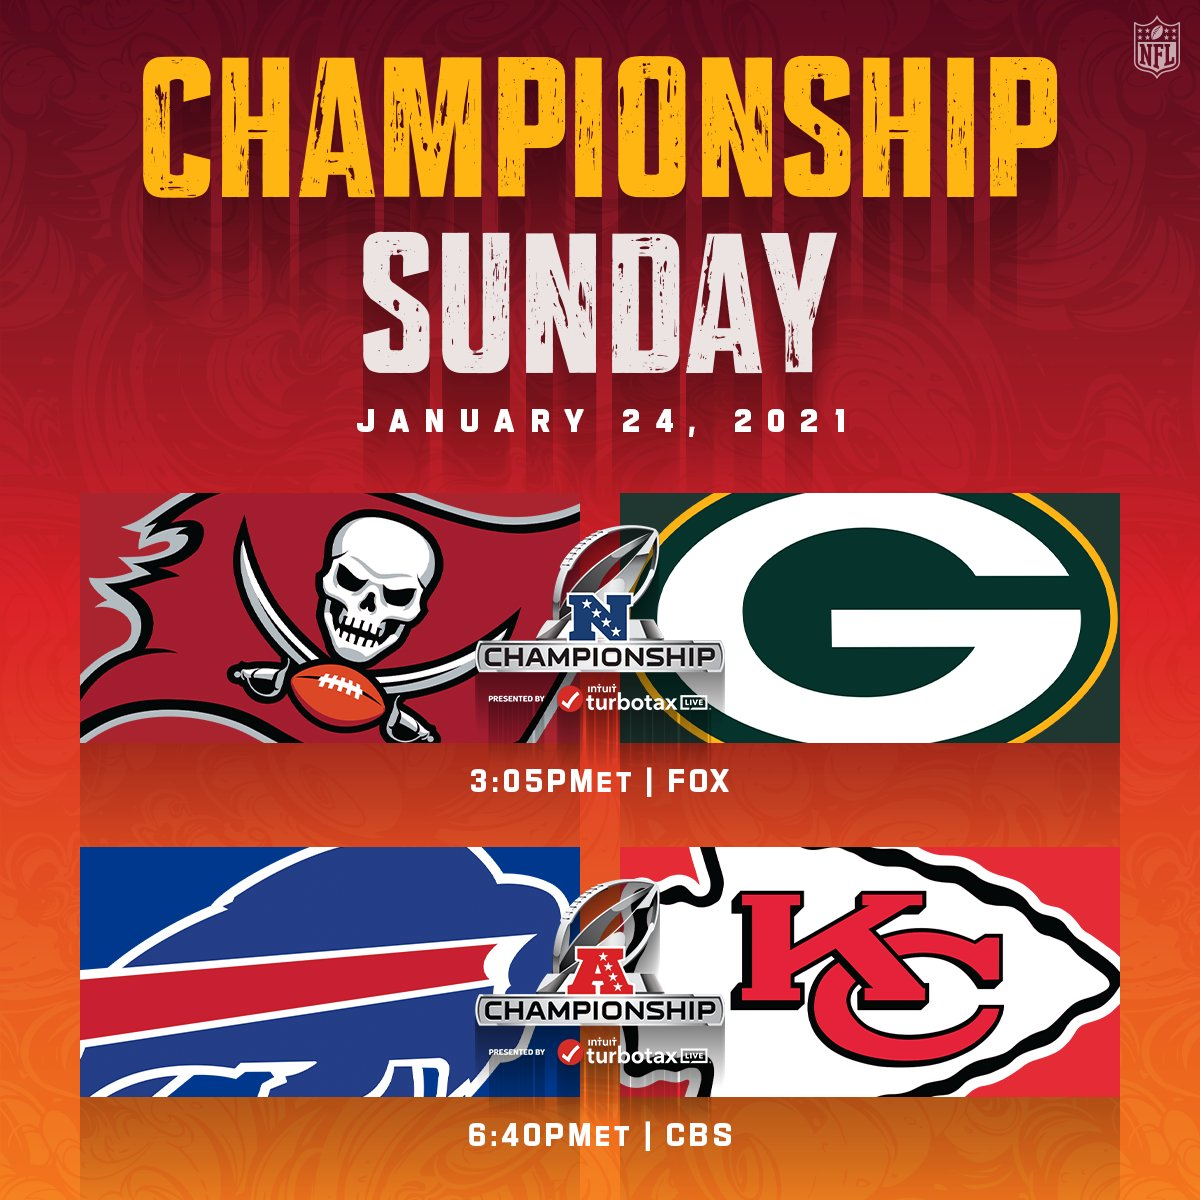 One day closer to Championship Sunday! 😁🏈  📺: #TBvsGB -- Sunday 3:05pm ET on FOX 📺: #BUFvsKC -- Sunday 6:40pm ET on CBS 📱: NFL app // Yahoo Sports app